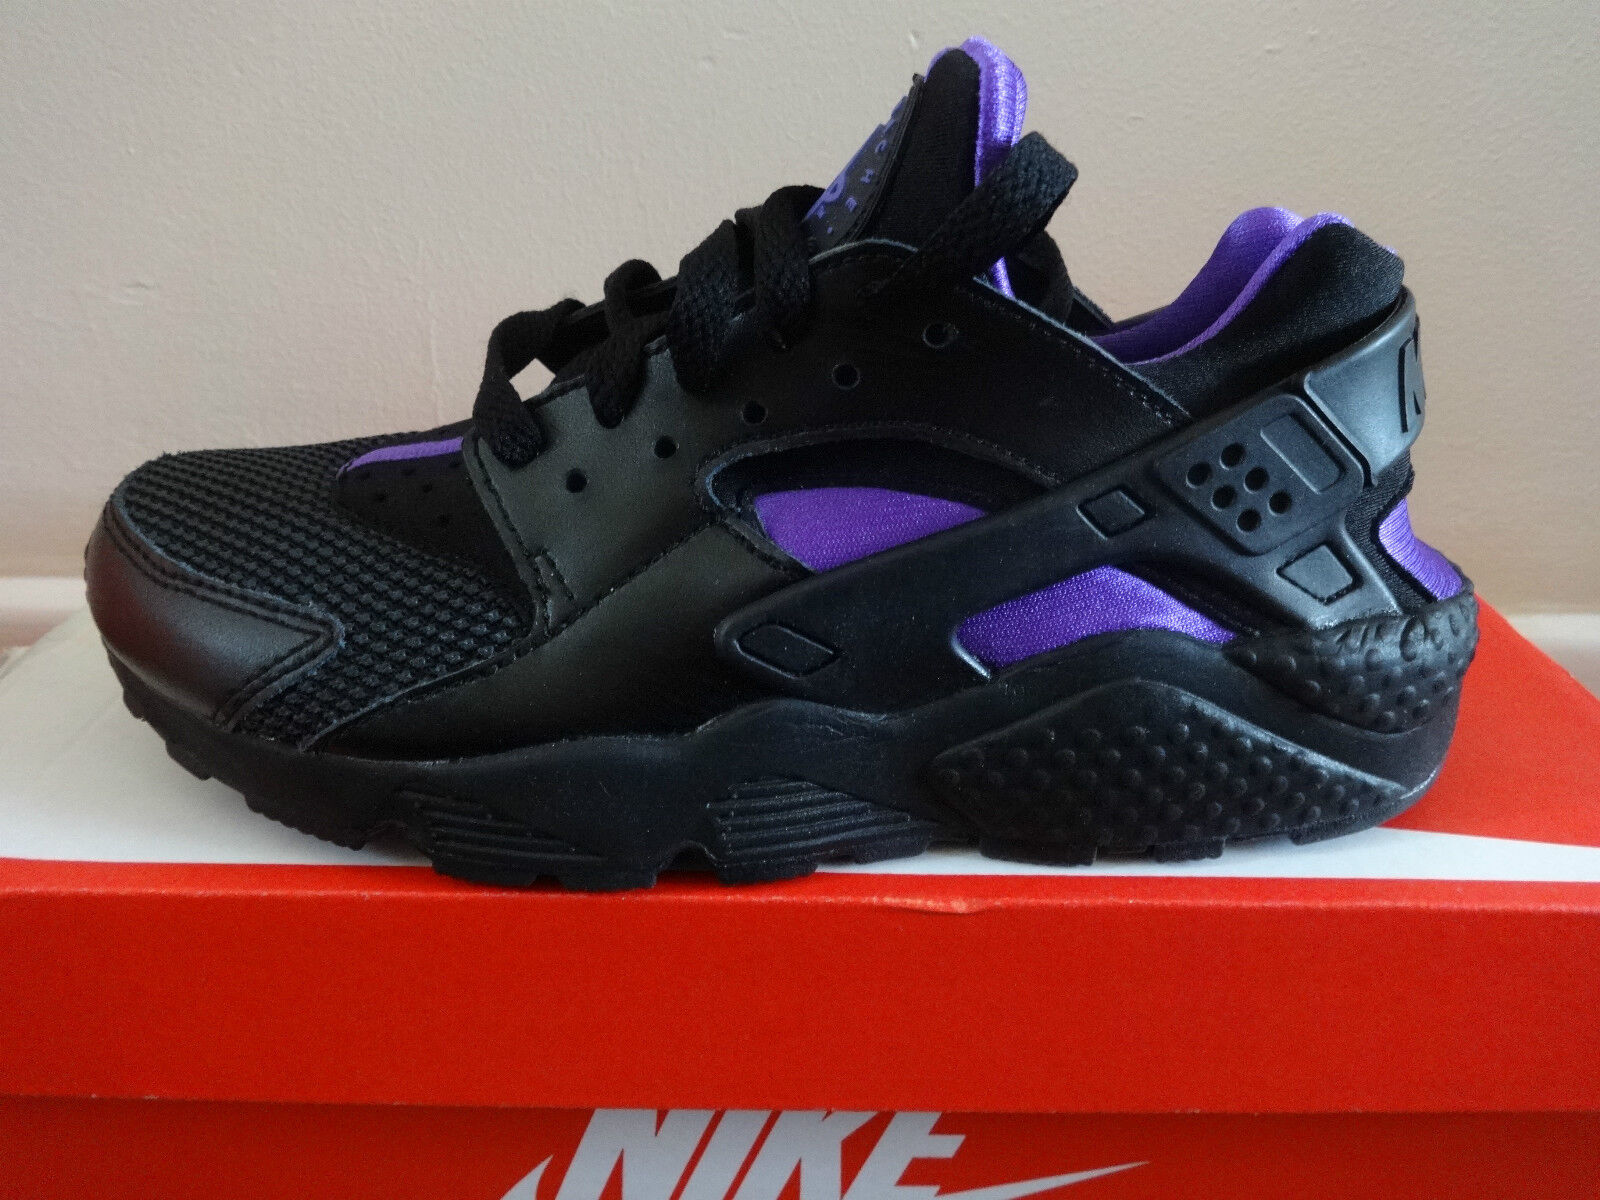 Nike Air huarache  Femme  trainers634835 005 uk 4 eu 37.5 us 6.5 new in box